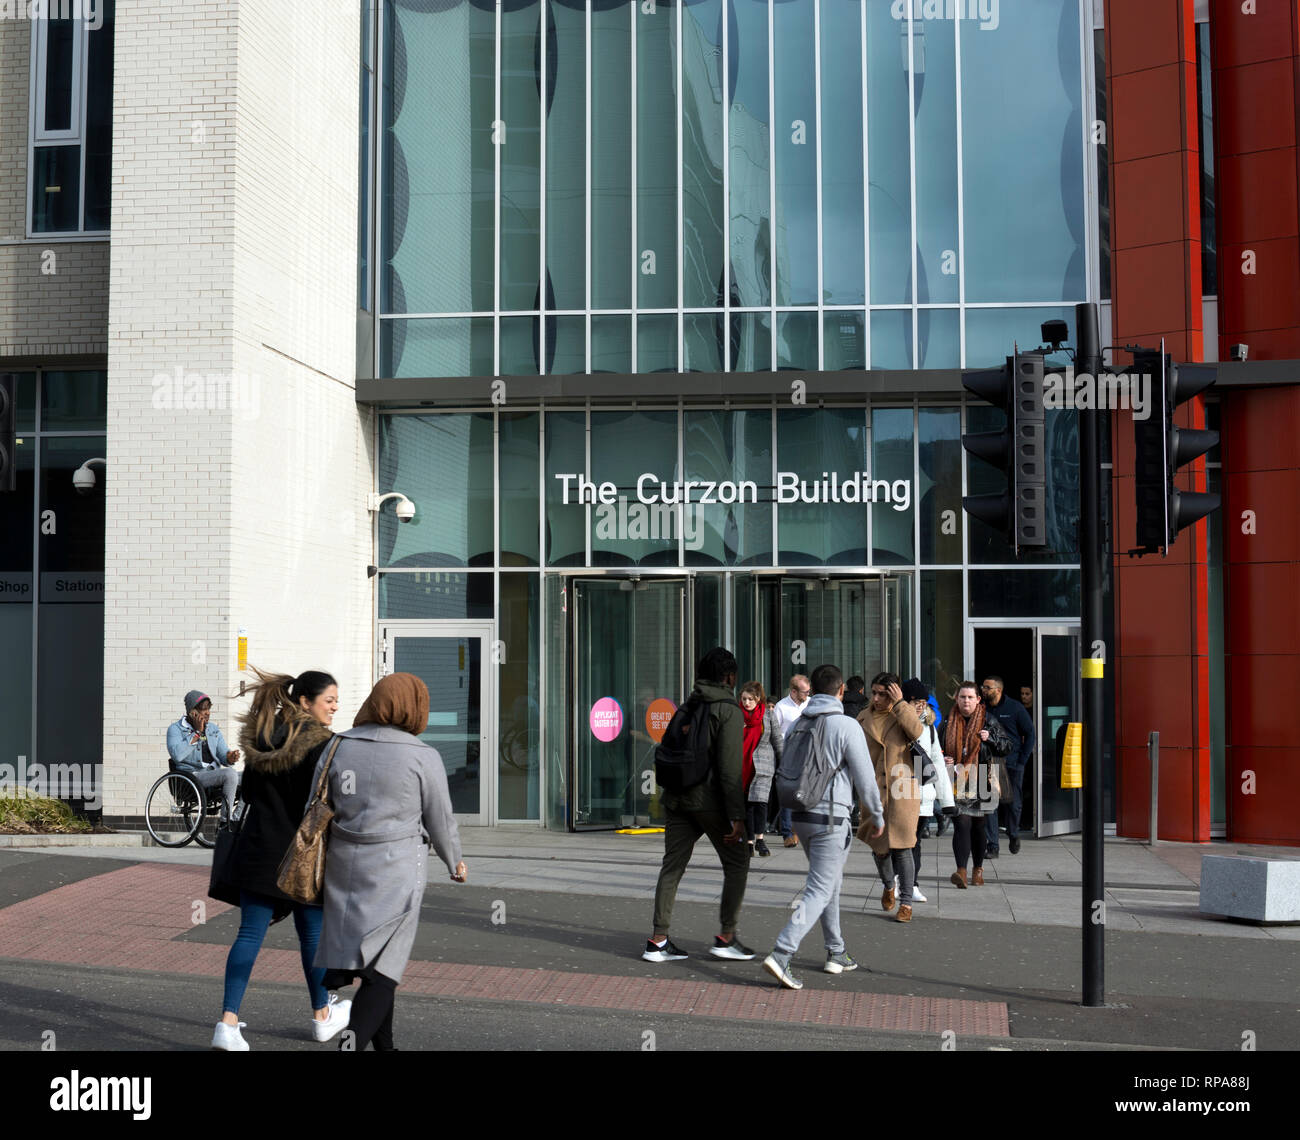 The Curzon Building, Birmingham City University, Birmingham, UK - Stock Image